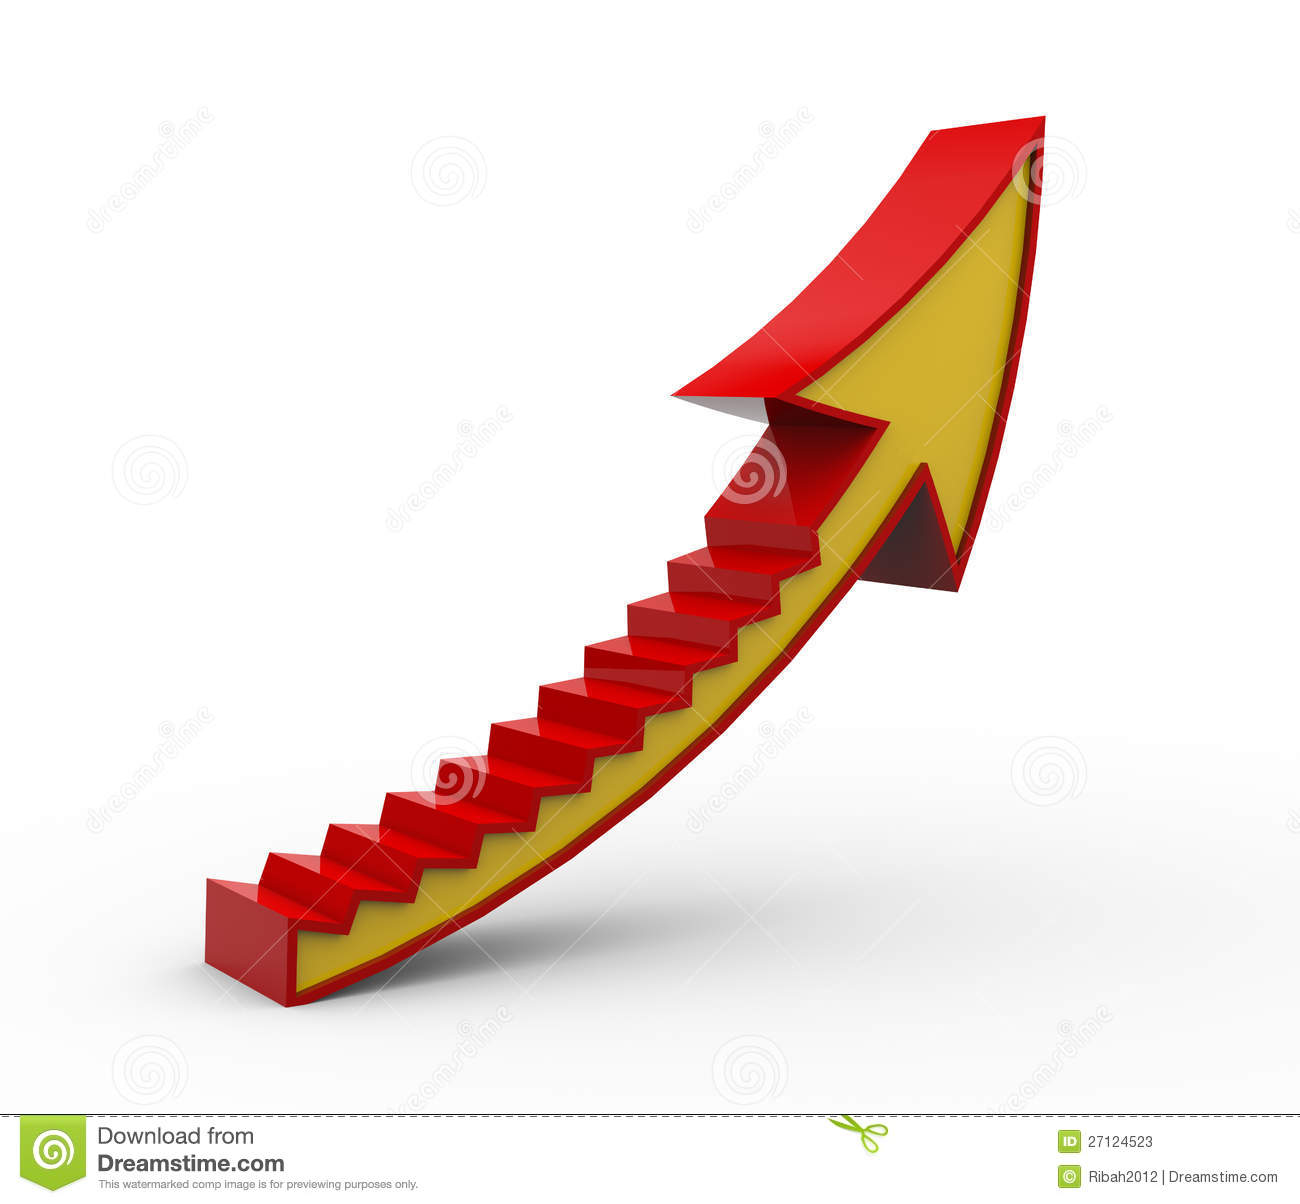 read a road map with Stock Photos 3d Curved Arrow Stair Image27124523 on Stock Photo Just Go Ahead Concept Chalkboard Image43832302 also Road Trip Mexico Finding Coloured Lagoons Pink Flamingoes Yucatan as well LocationPhotoDirectLink G293916 D2425310 I51168940 Terminal 21 Bangkok as well Stock Illustration Girl Helping Old Woman To Cross Road Flat Illustration Kind Image62041105 as well Kaizen Blitz.